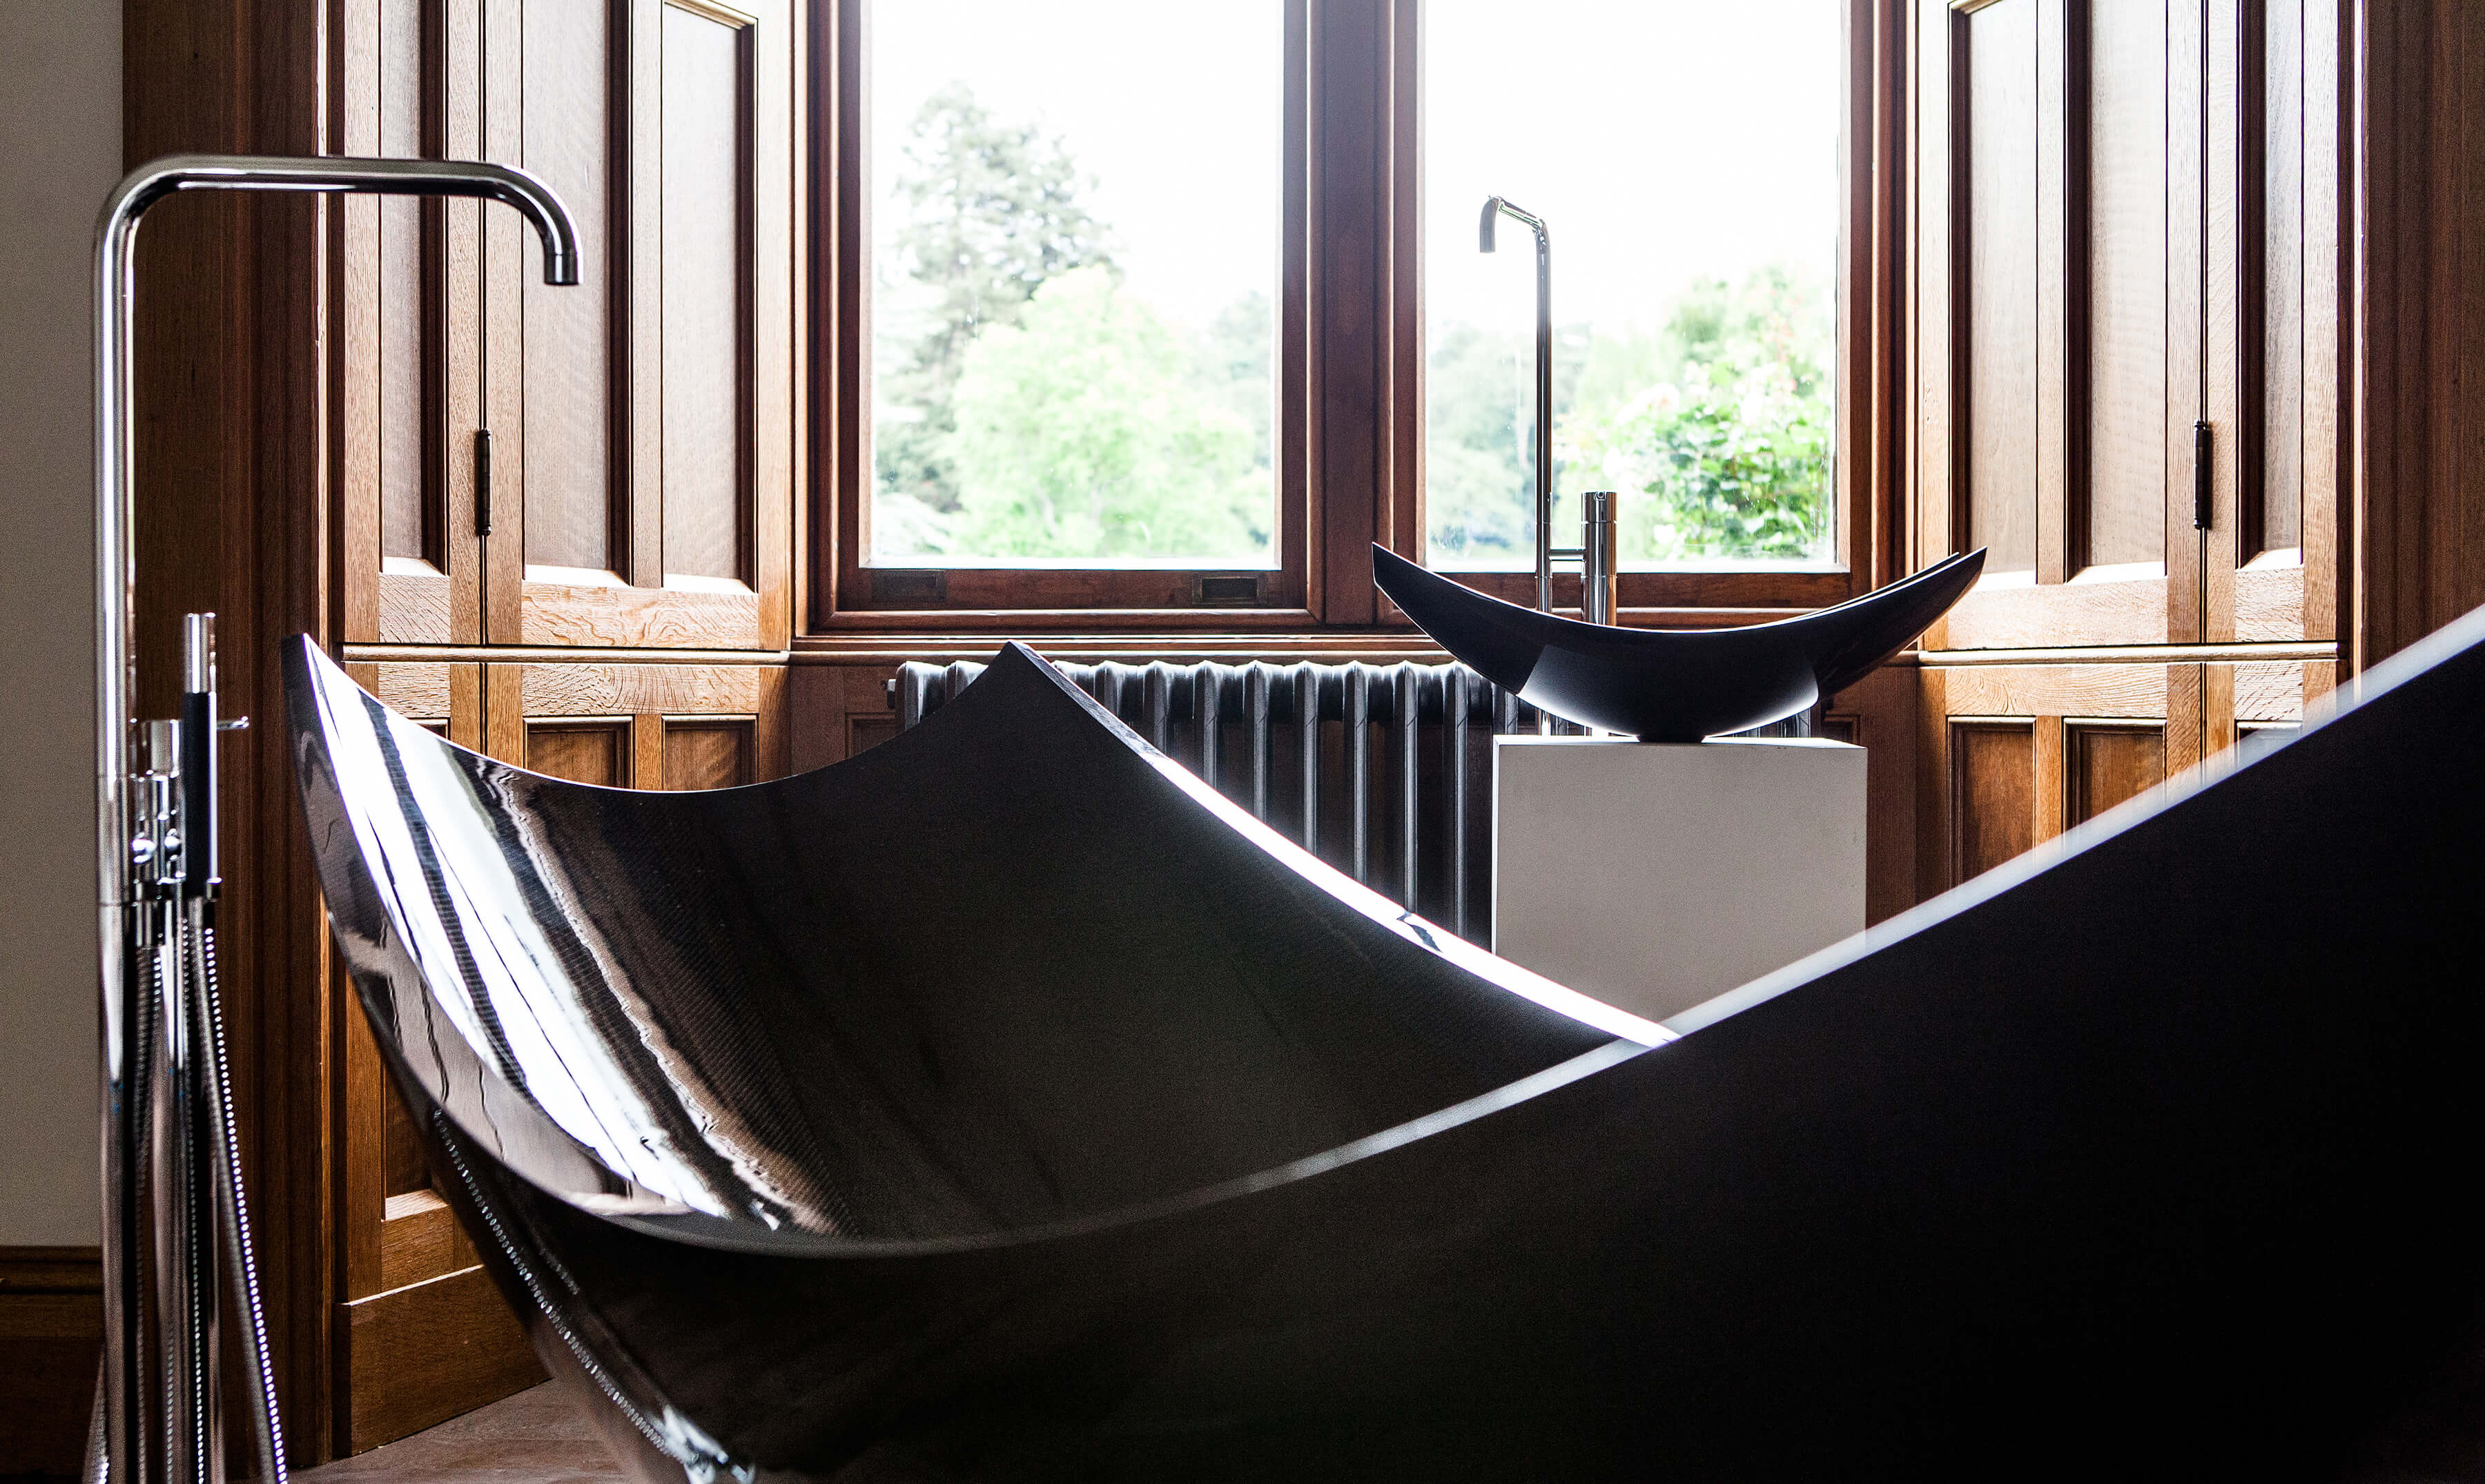 Close up of black freestanding hammock bath and basin next to window.